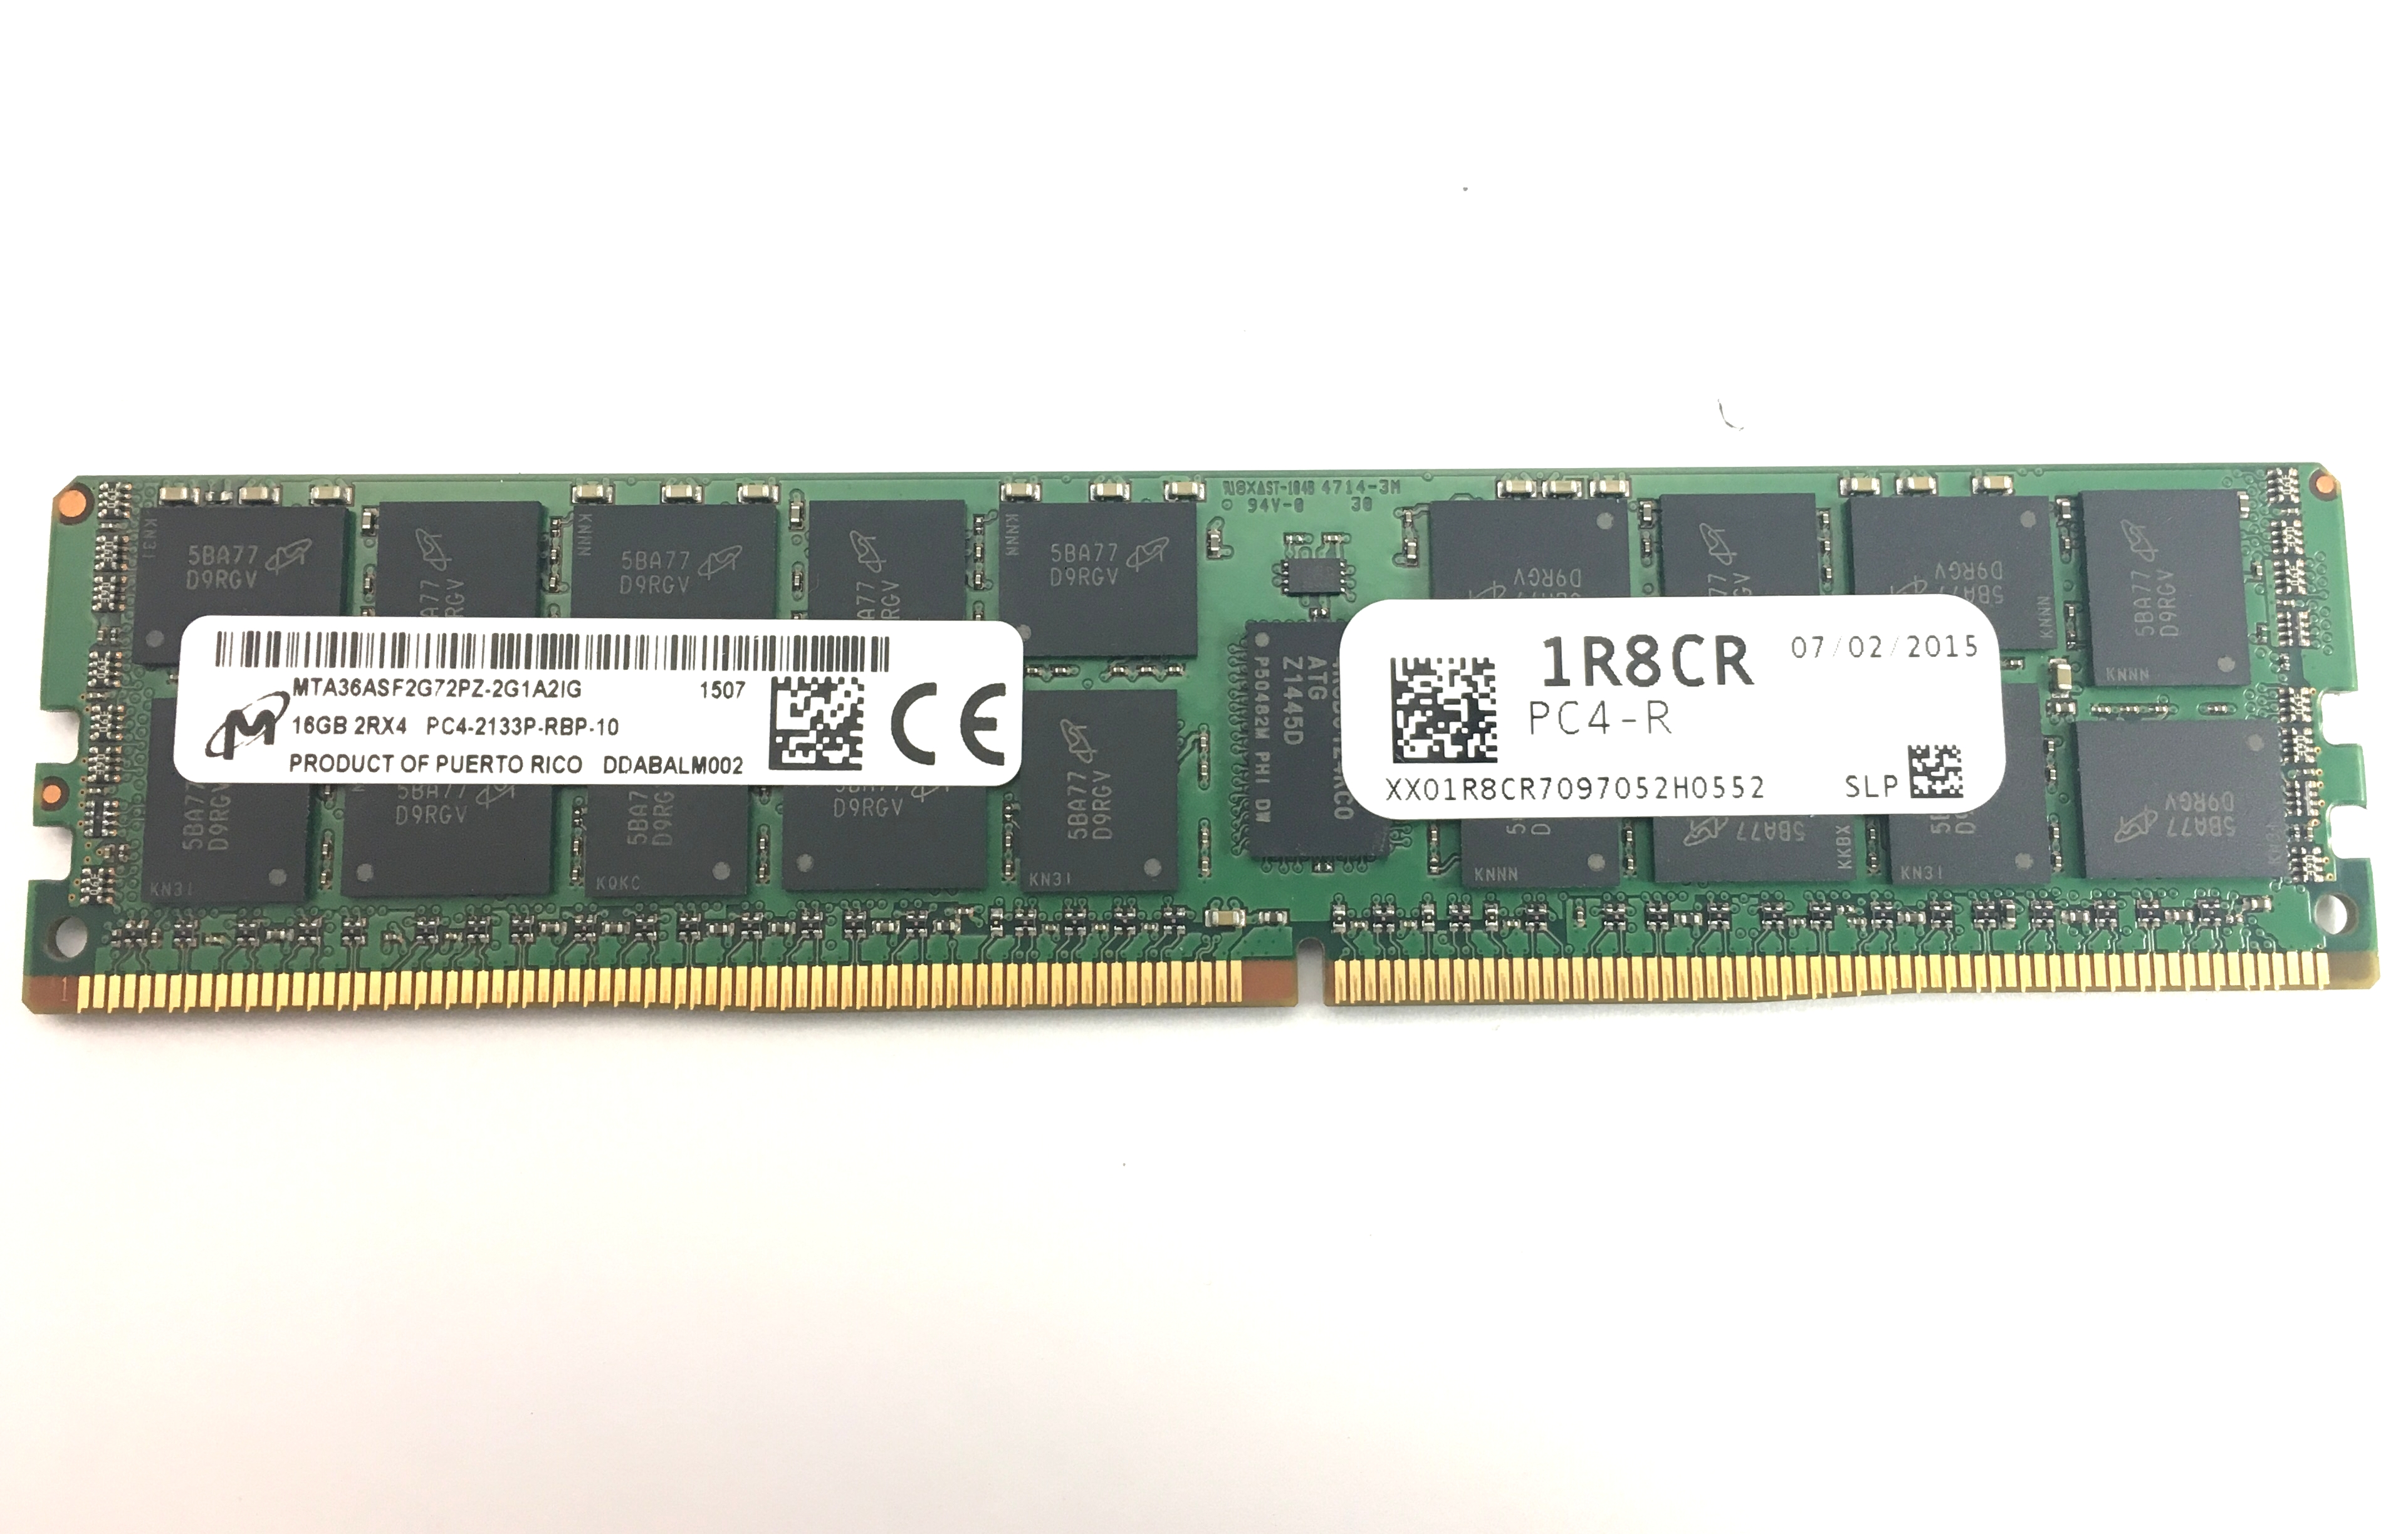 DELL 16GB 2RX4 PC4-2133P DDR4-1700P DUAL RANK ECC REGISTERED MEMORY (1R8CR)